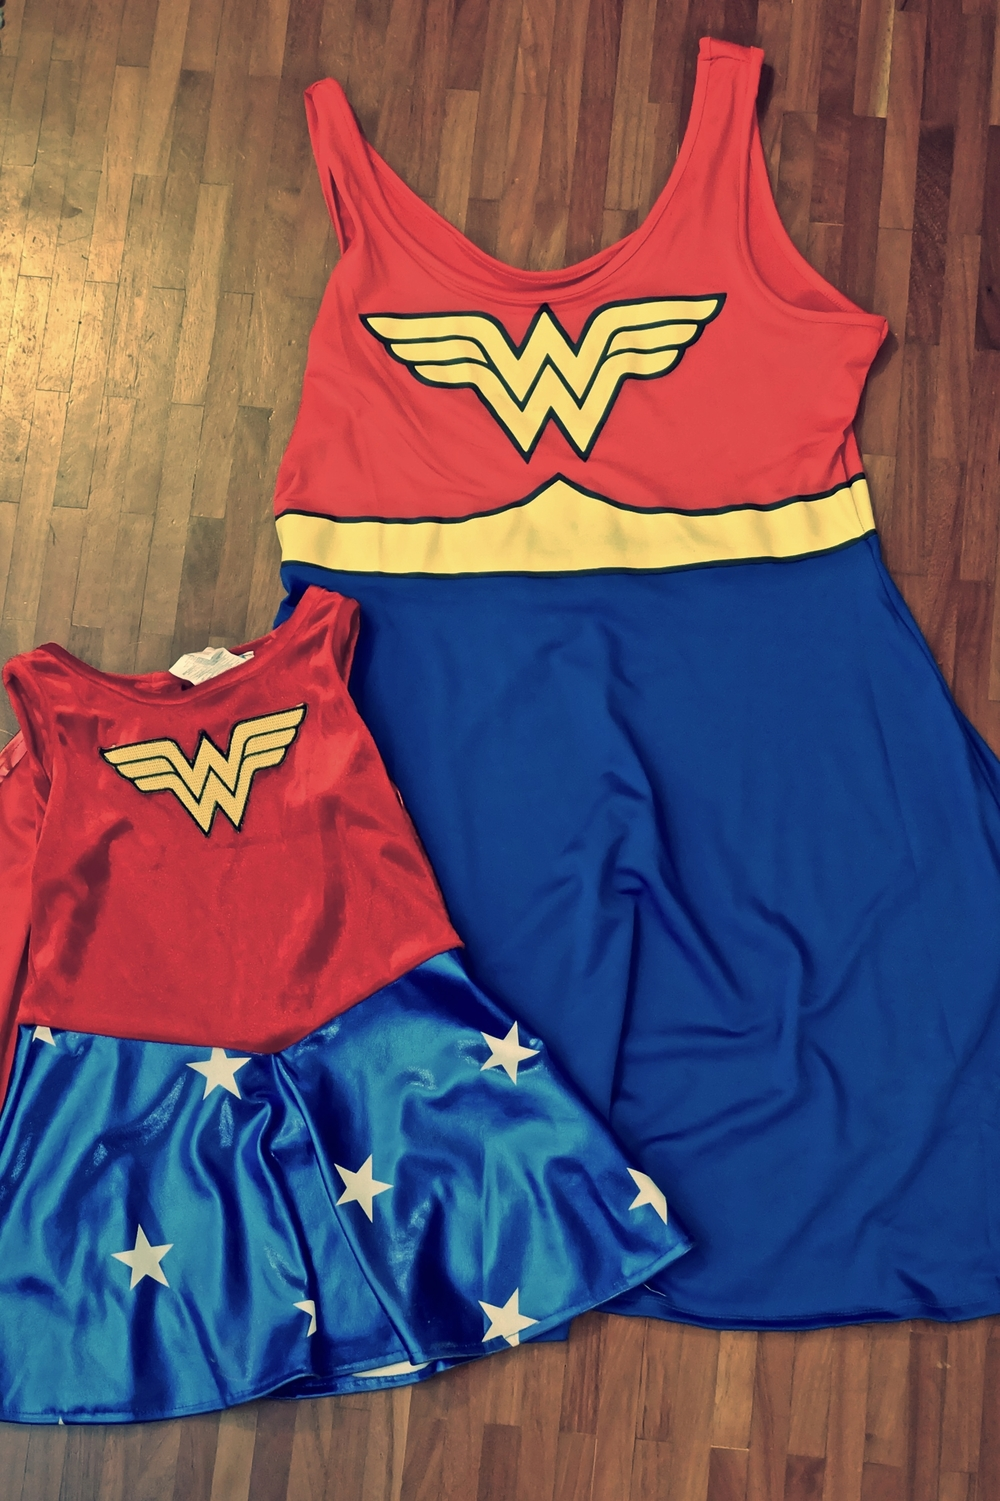 This years Luxcon (Luxembourg's spin on comicon) was a great success. I put some thought into this years get up and decided to dress up with my 2 year old. Last year we didn't, so I thought it would be more fun going in matching costumes. After a long search I decided on wonder woman. I got both dresses for a decent price on Amazon and after a few quick tweaks here and there it was done. Overall we had a great time and on the second day I got to buy some geeky loot.